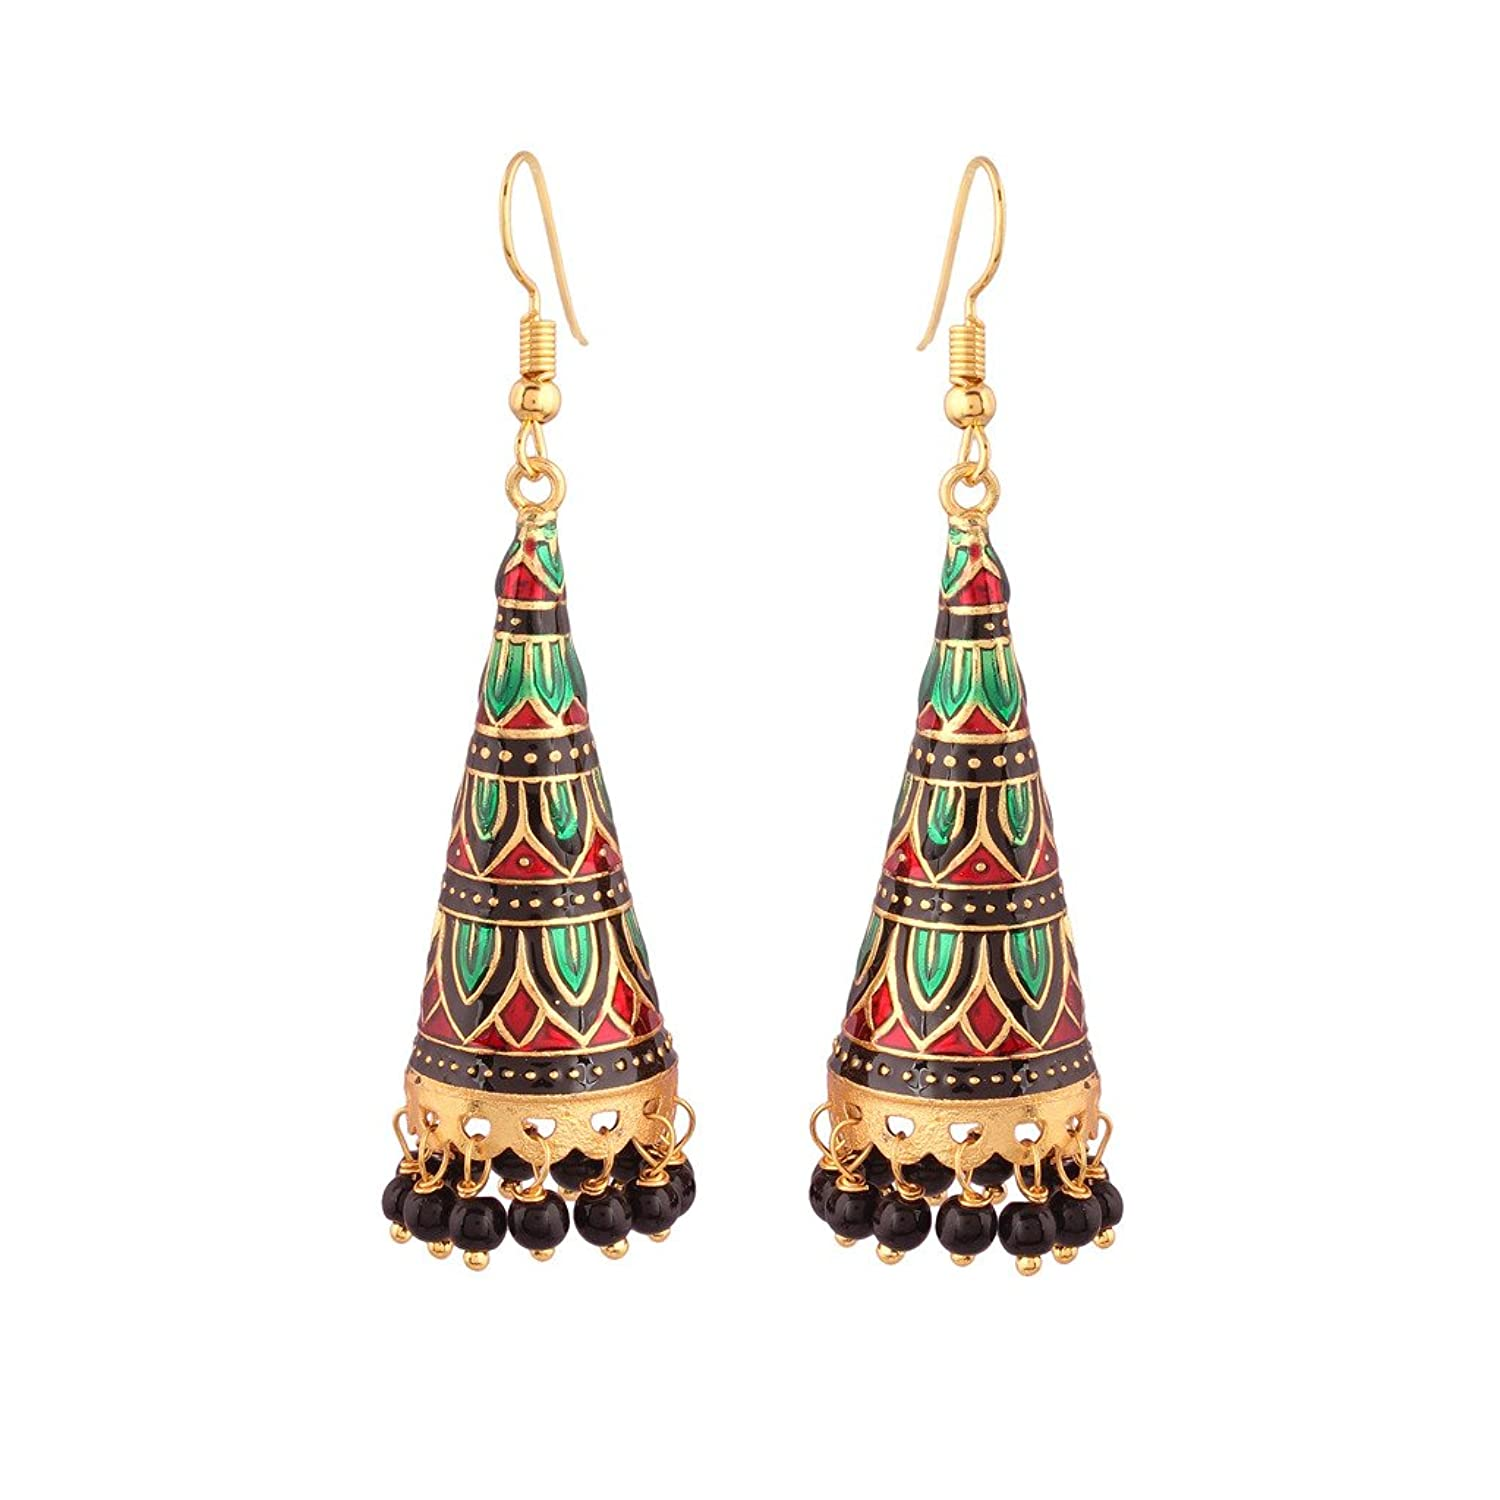 gold product earrings plated detail jhumki metal oxidised rajasthani brass mart silver jaipur